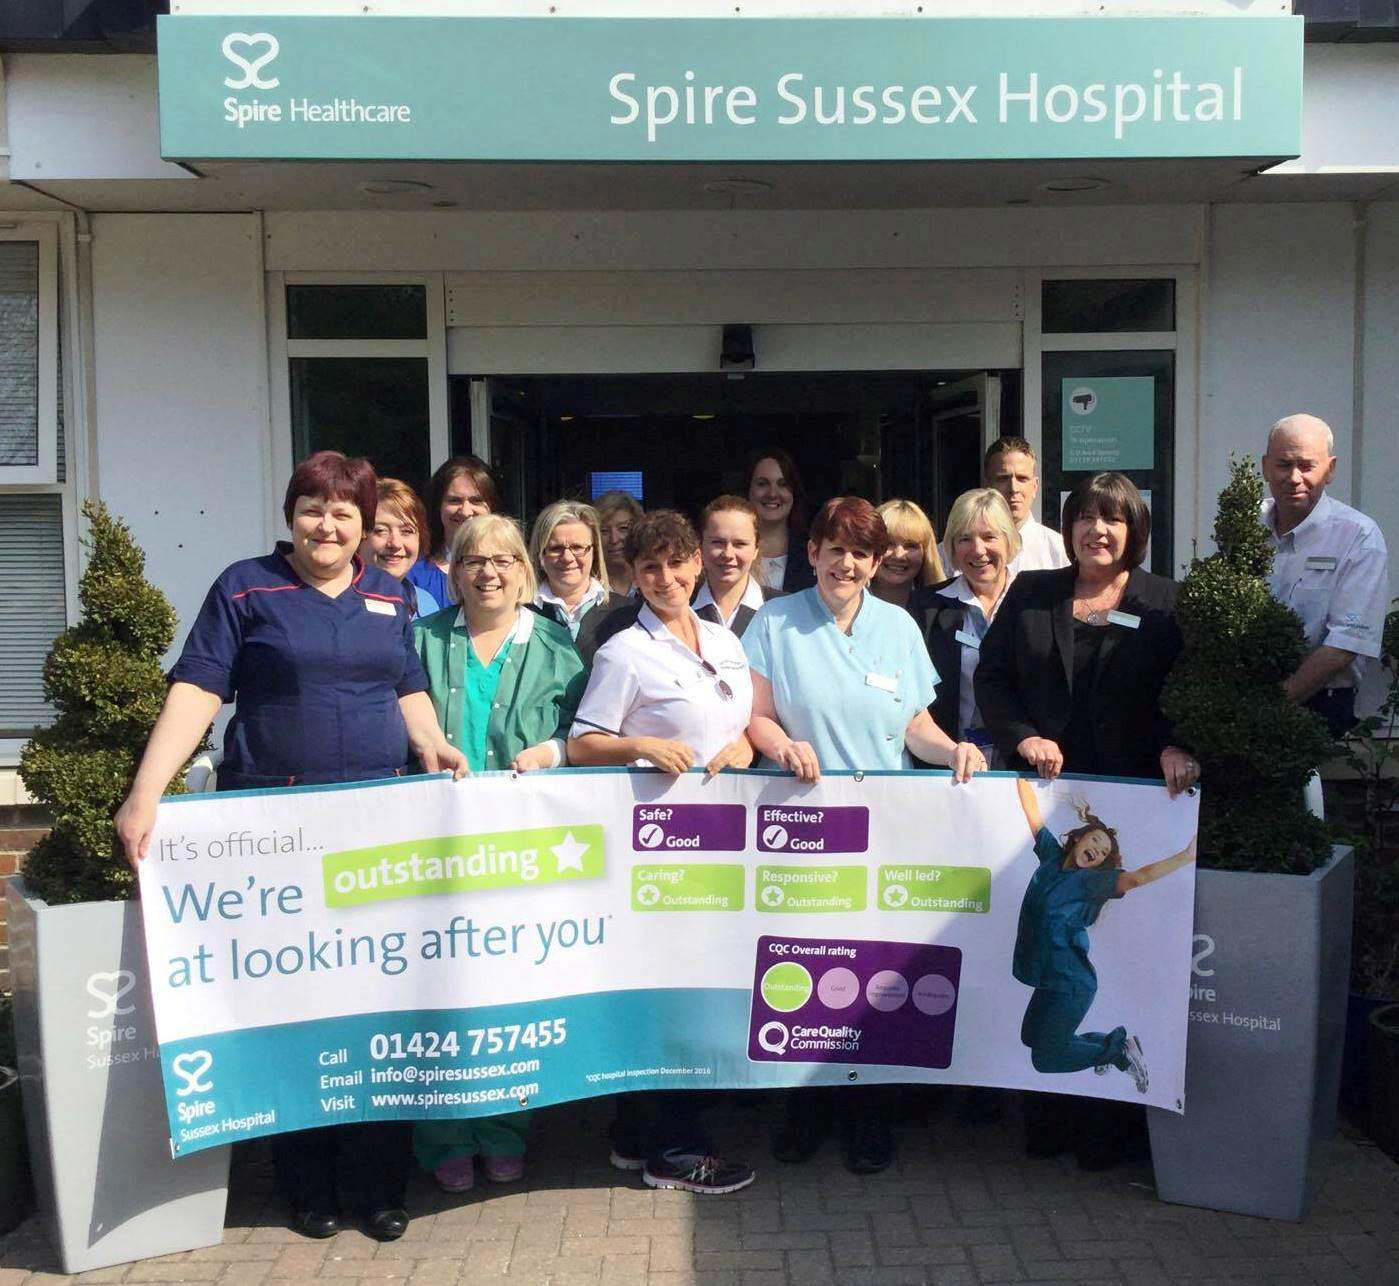 CQC rate Spire Sussex Hospital as 'Outstanding'